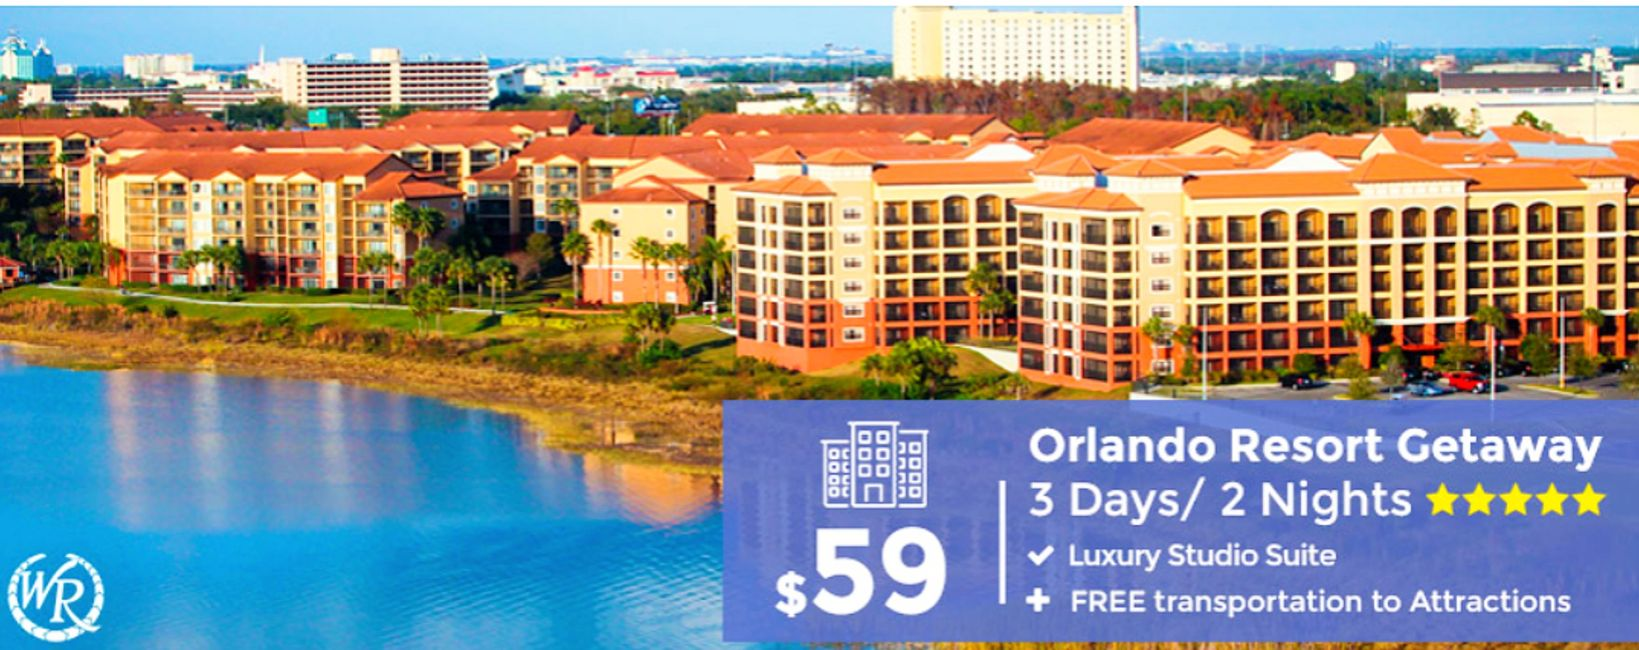 Orland vacation packages by Troy Weaver.